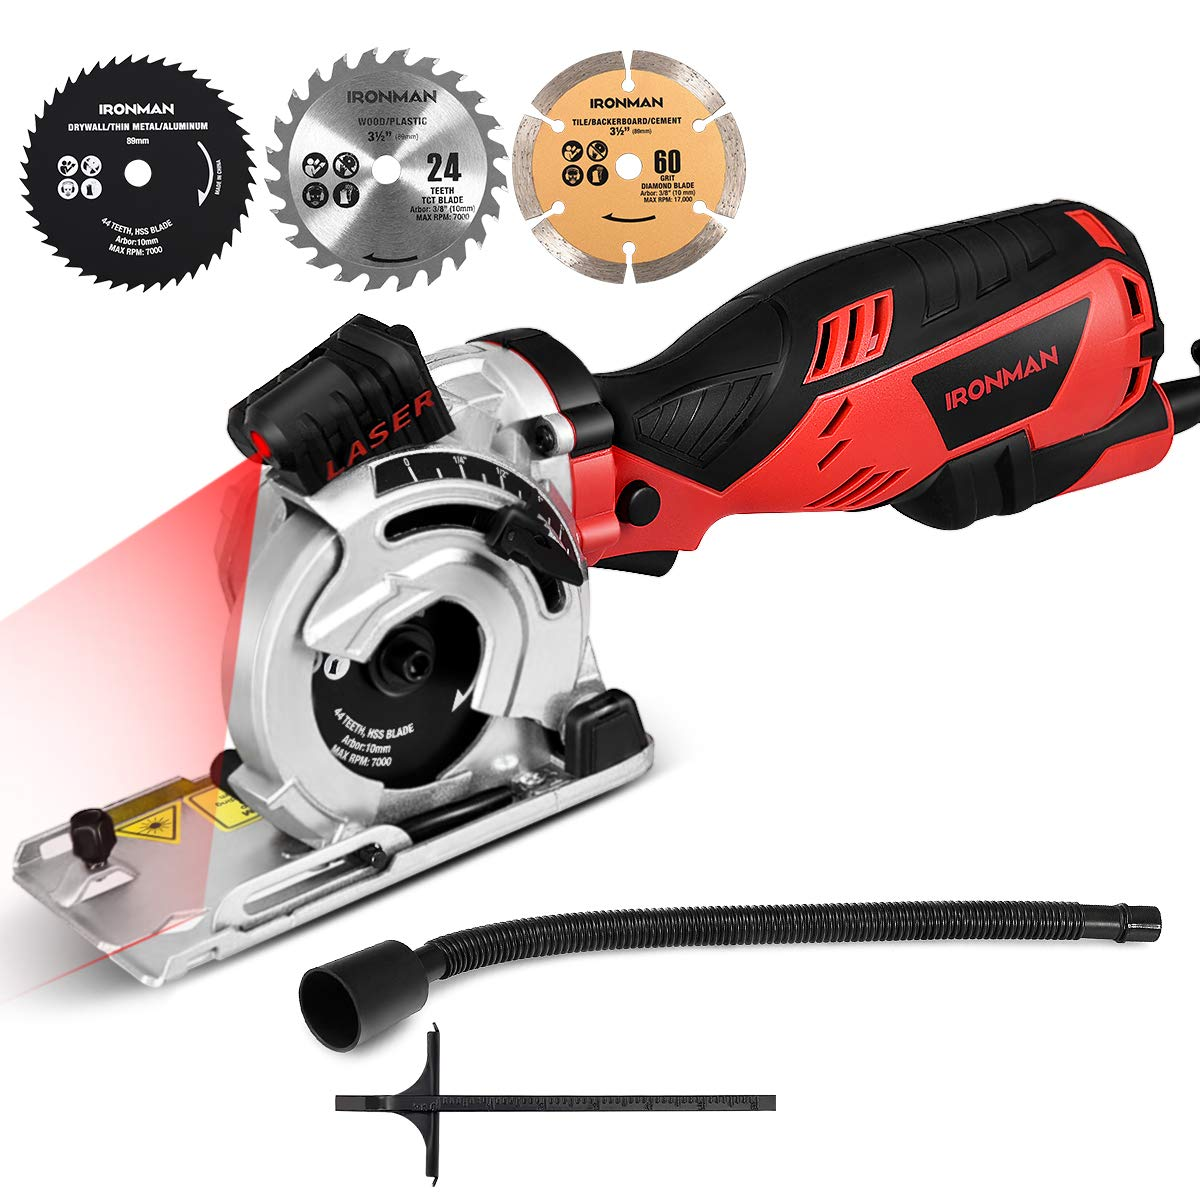 Goplus Circular Saw, 5.8 Amp 705W Equivalent 7.5A 900W 4500RPM Mini Circular Saw, Max Cutting Depth 1-1 8 Compact Saw with Laser Guide and 3-Blade Kit, Ideal for Wood, Metal,Tile and Plastic Cuts